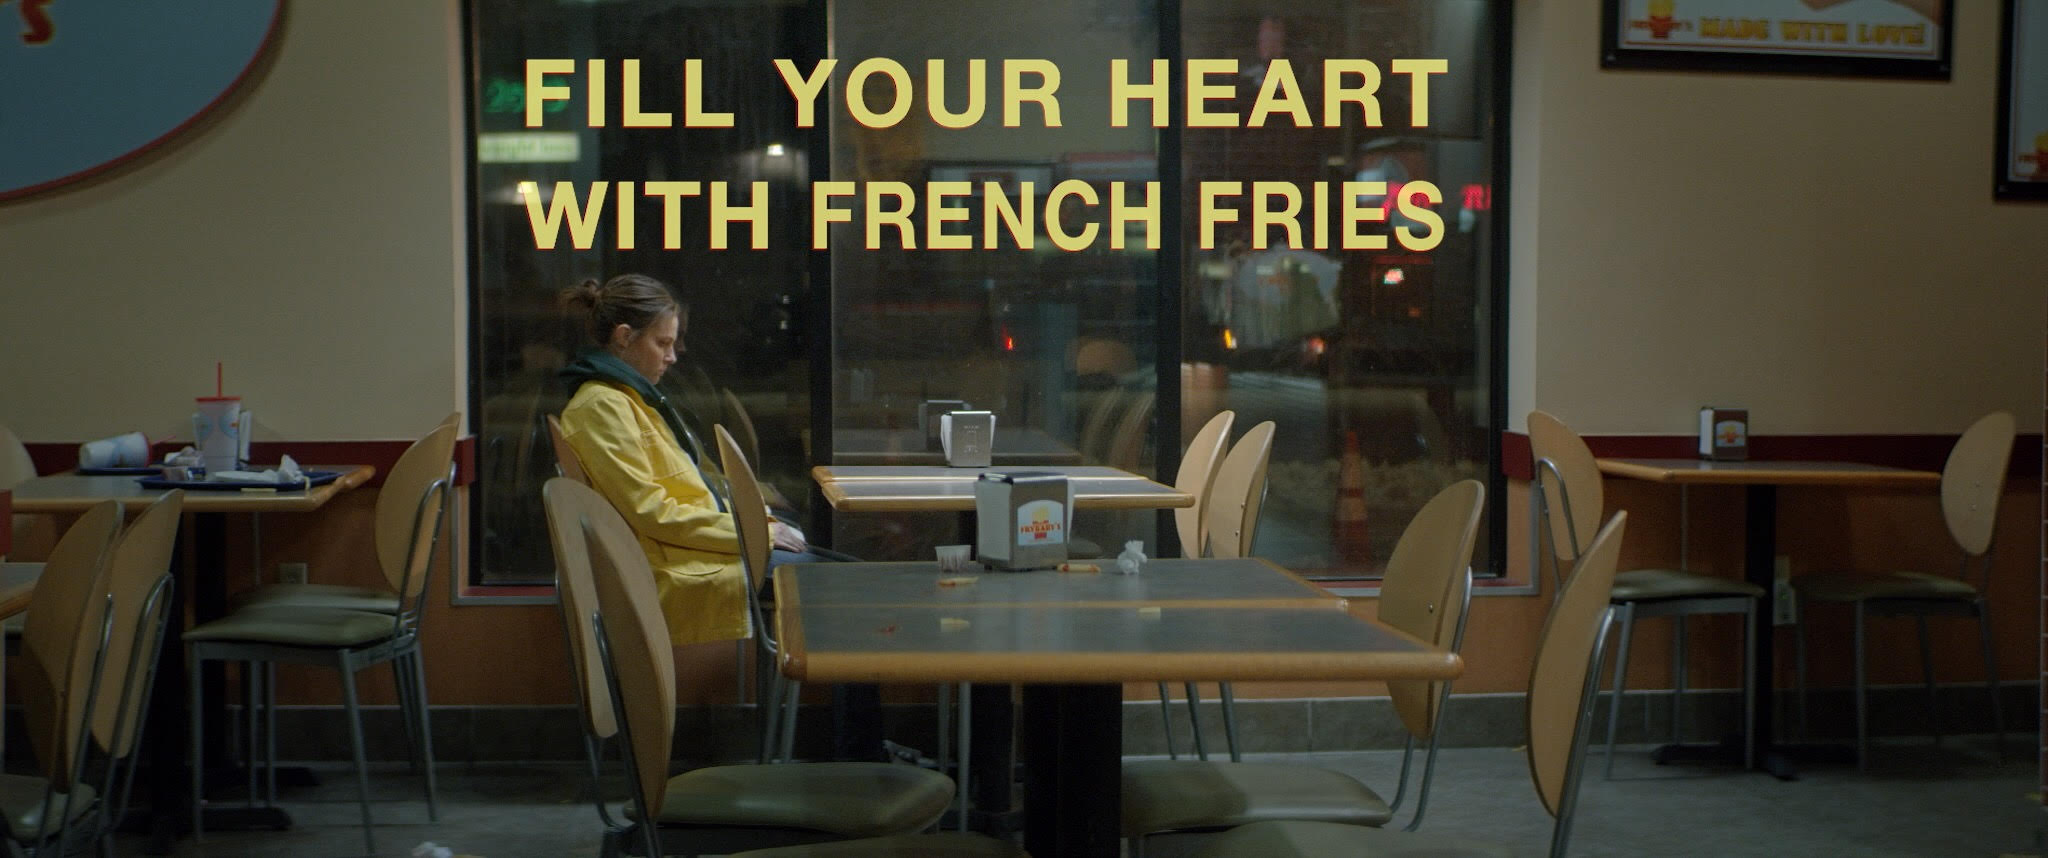 fill your heart with french fries image .jpg